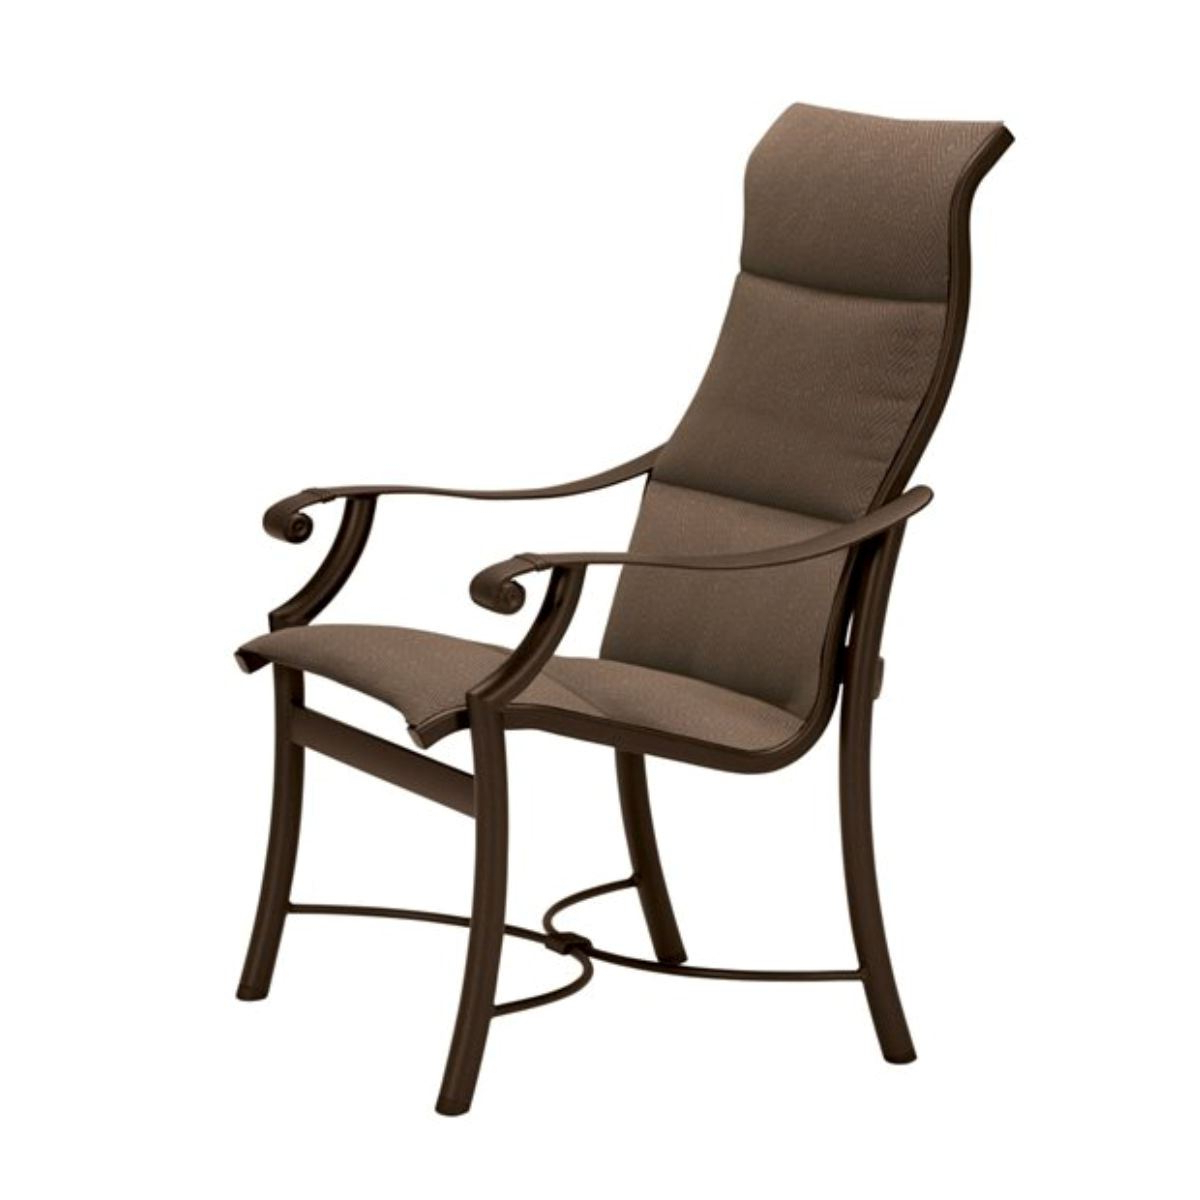 Tropitone Montreux Padded Sling High Back Dining Chair, 17 Lbs. Within Recent Padded Sling Double Gliders (Gallery 28 of 30)